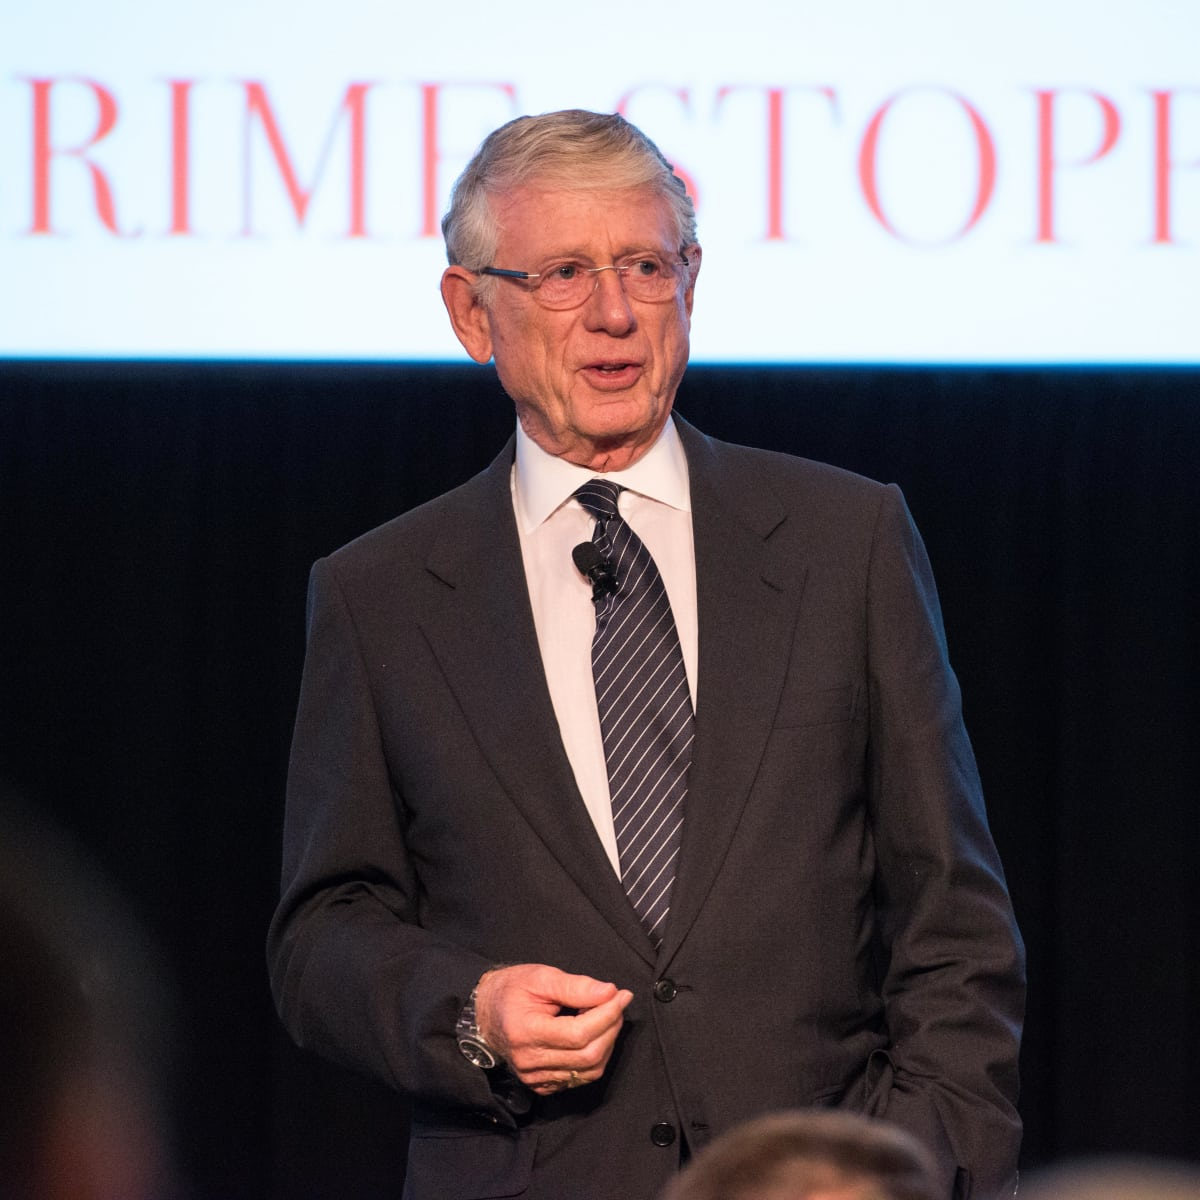 Crime Stoppers Gala Keynote Speaker Ted Koppel